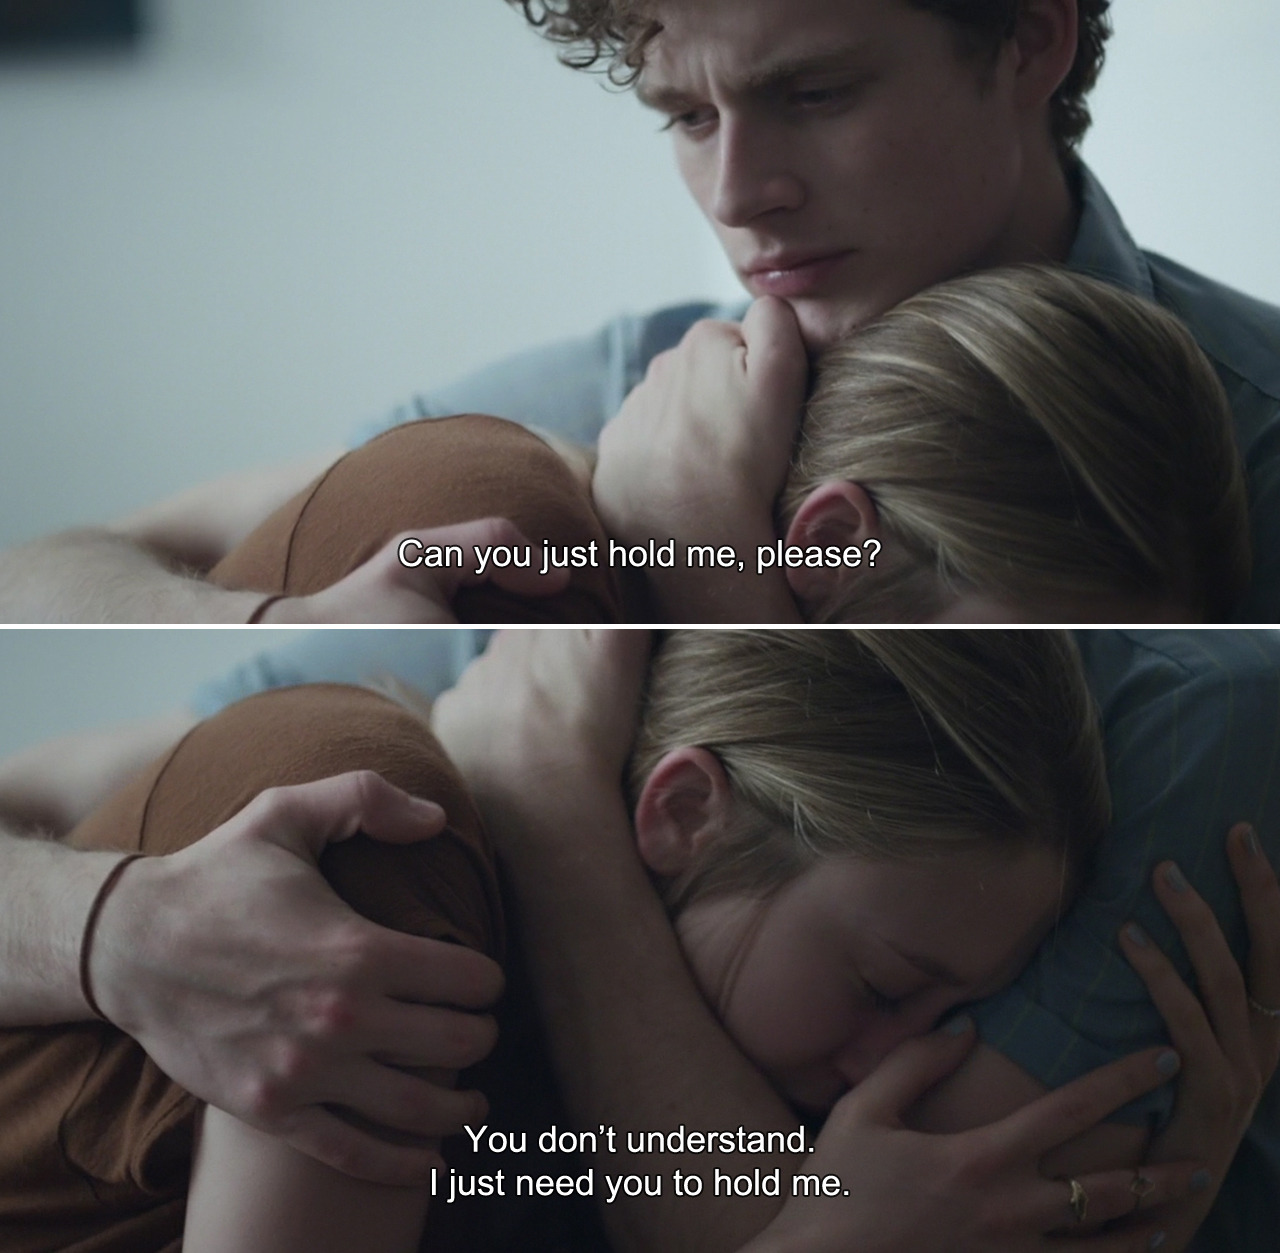 anamorphosis-and-isolate:  ― 6 Years (2015)Melanie: Can you just hold me, please? You don't understand. I just need you to hold me.